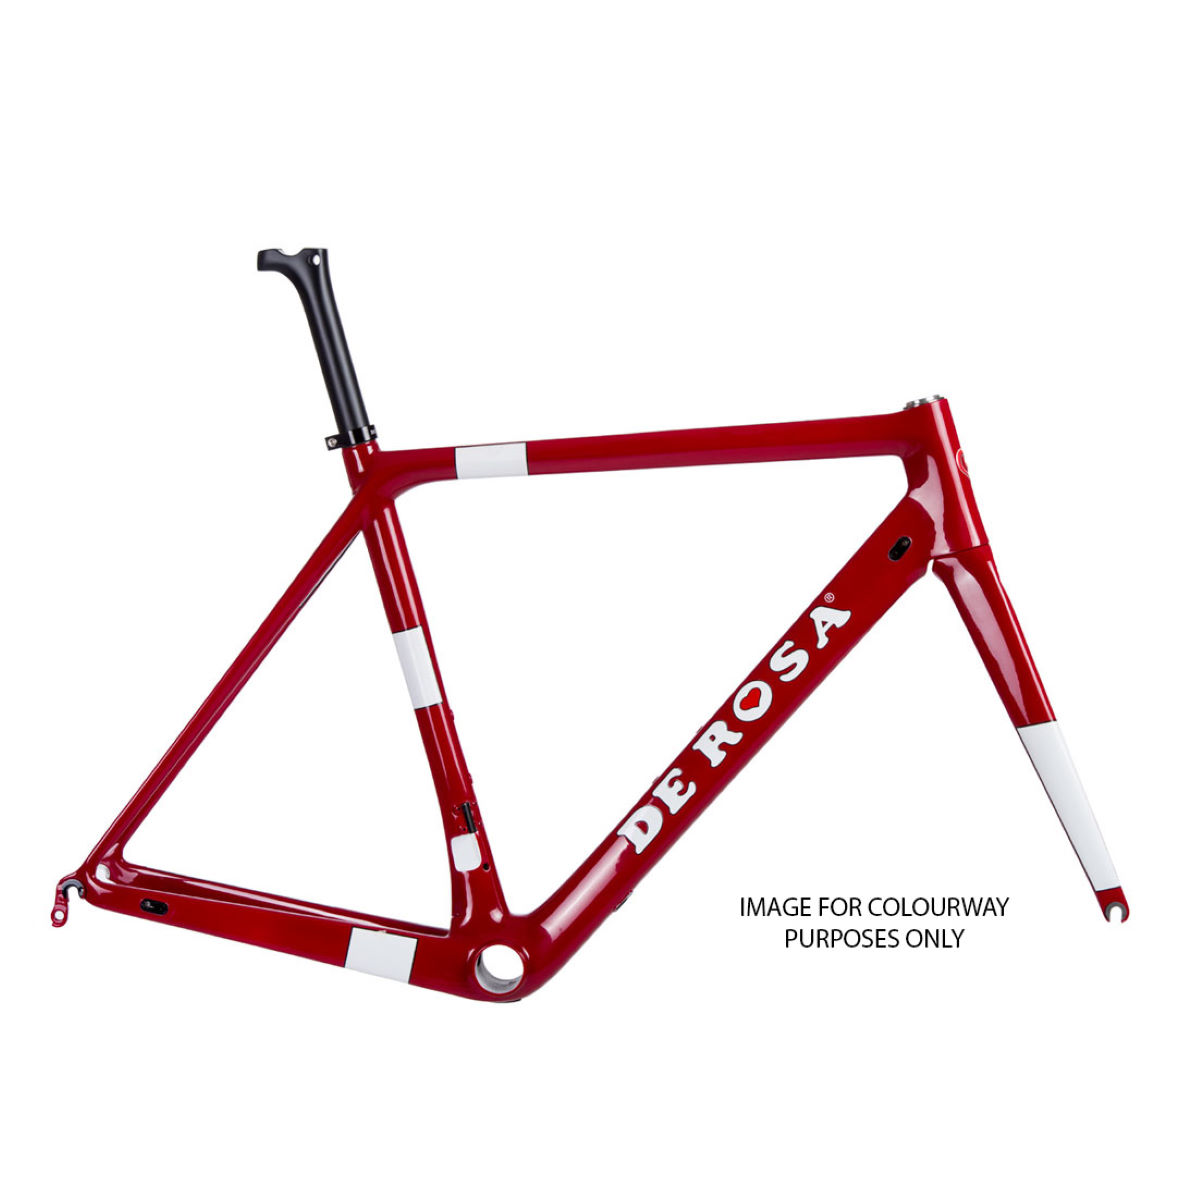 Vélo de route De Rosa King XS (Record, 2017) - 49cm Stock Bike Rouge/Blanc Vélos de route